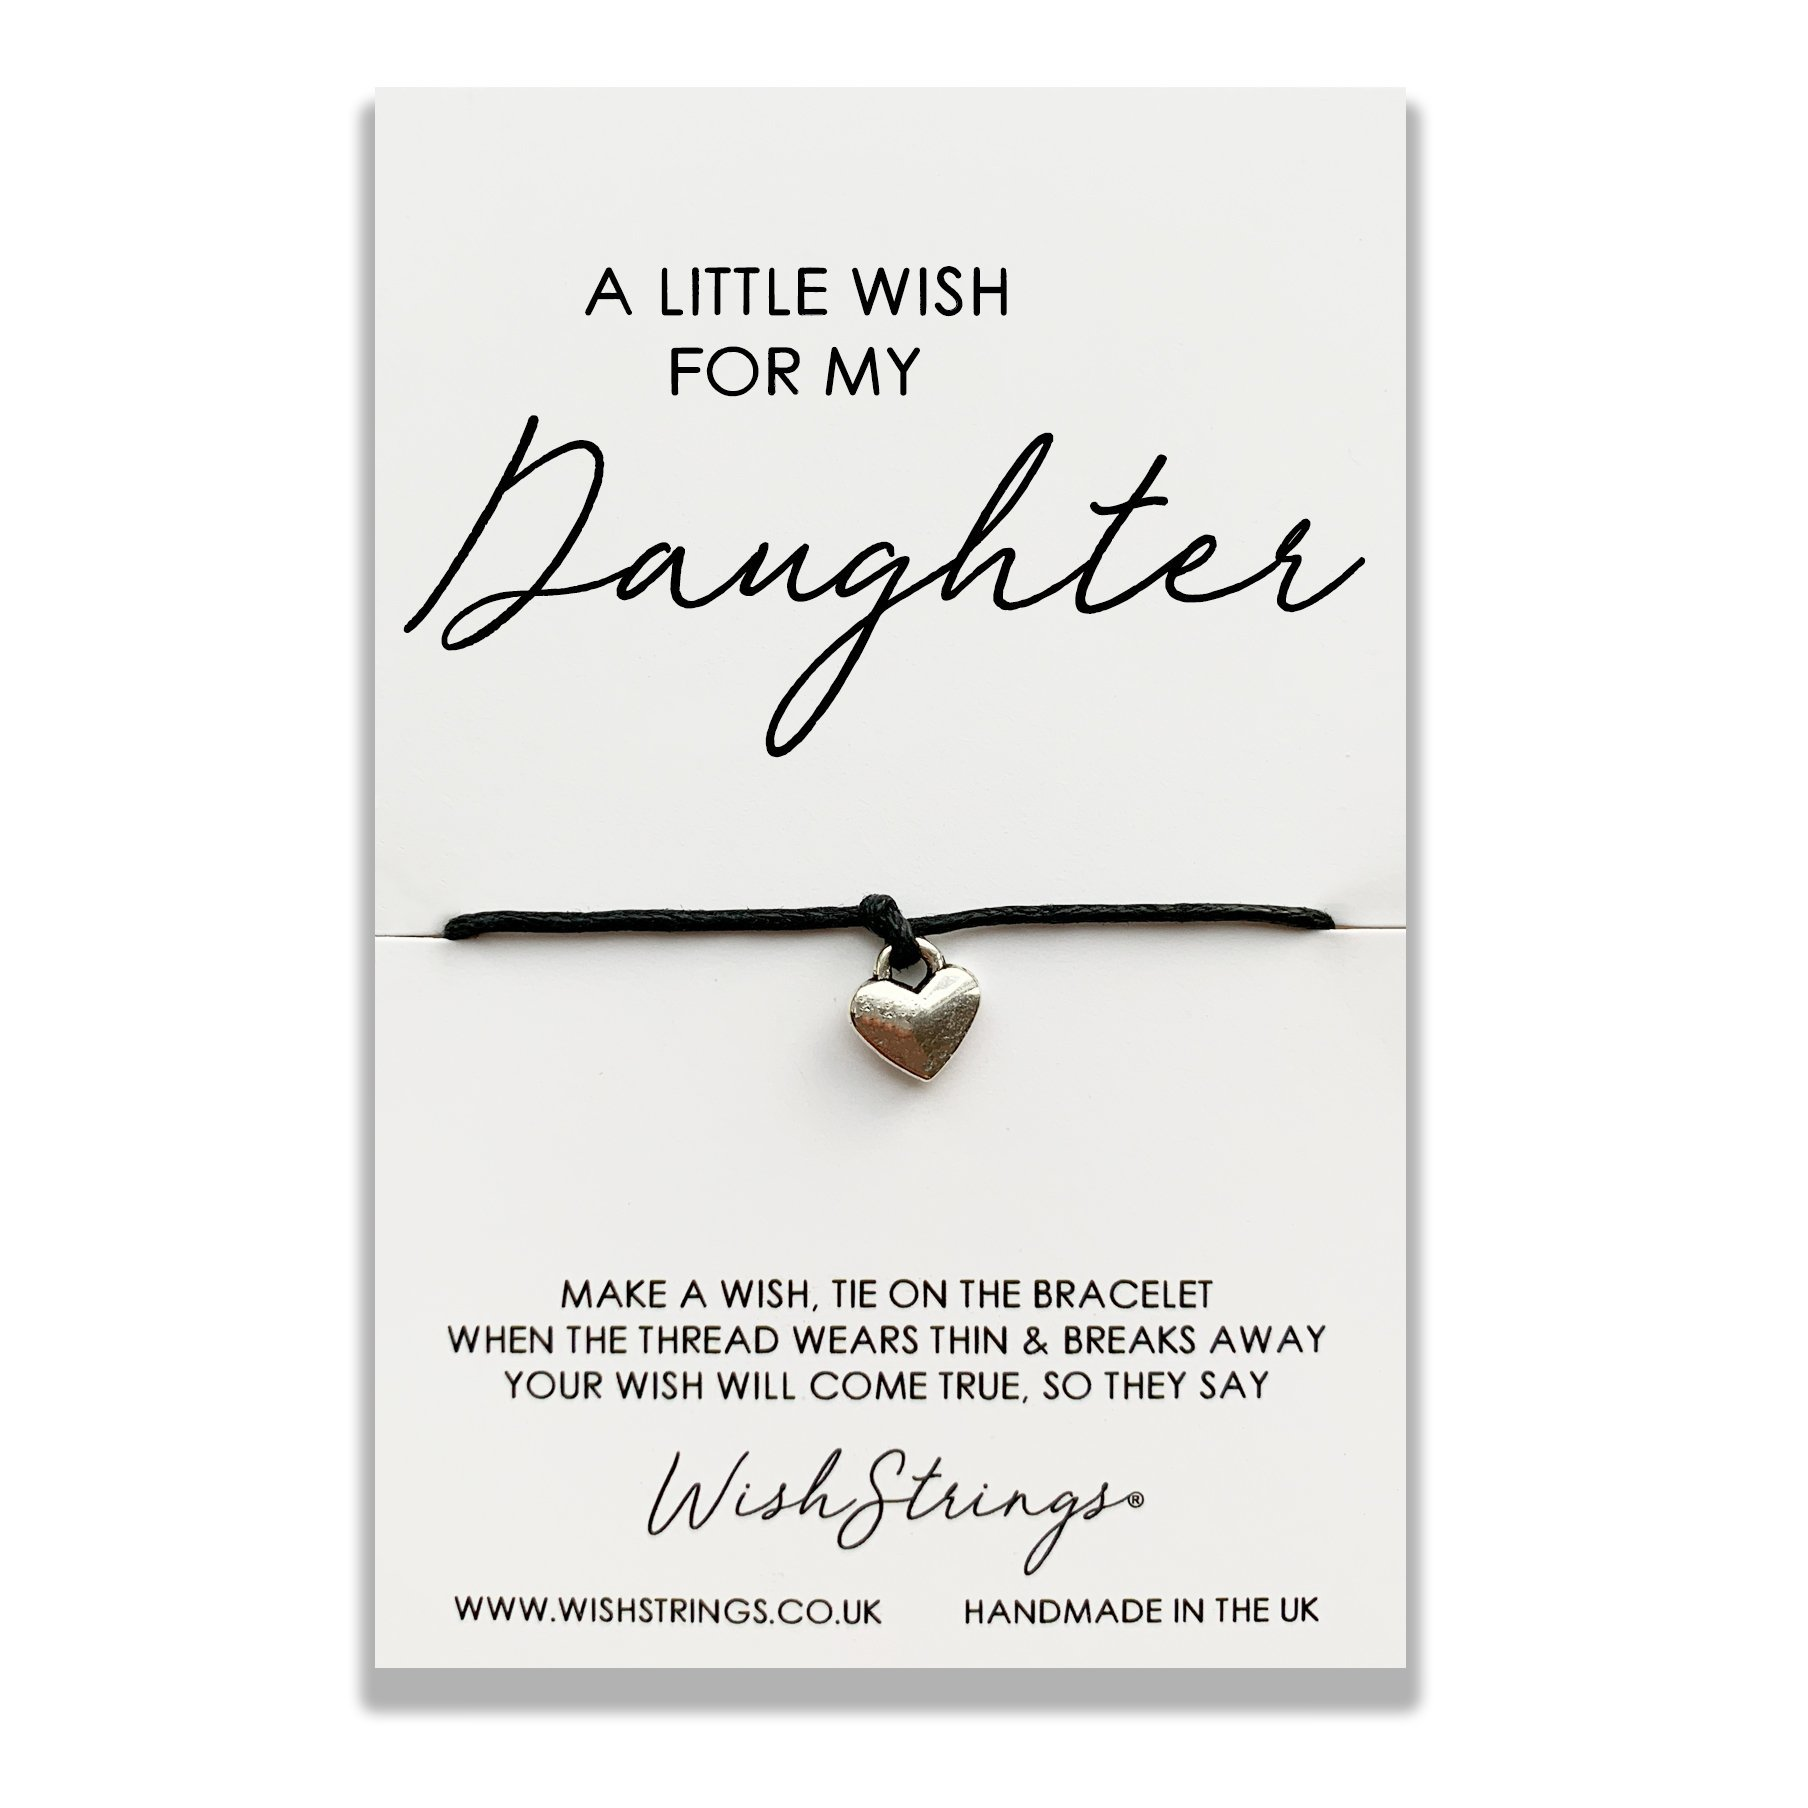 A LITTLE WISH FOR MY DAUGHTER WISHSTRING